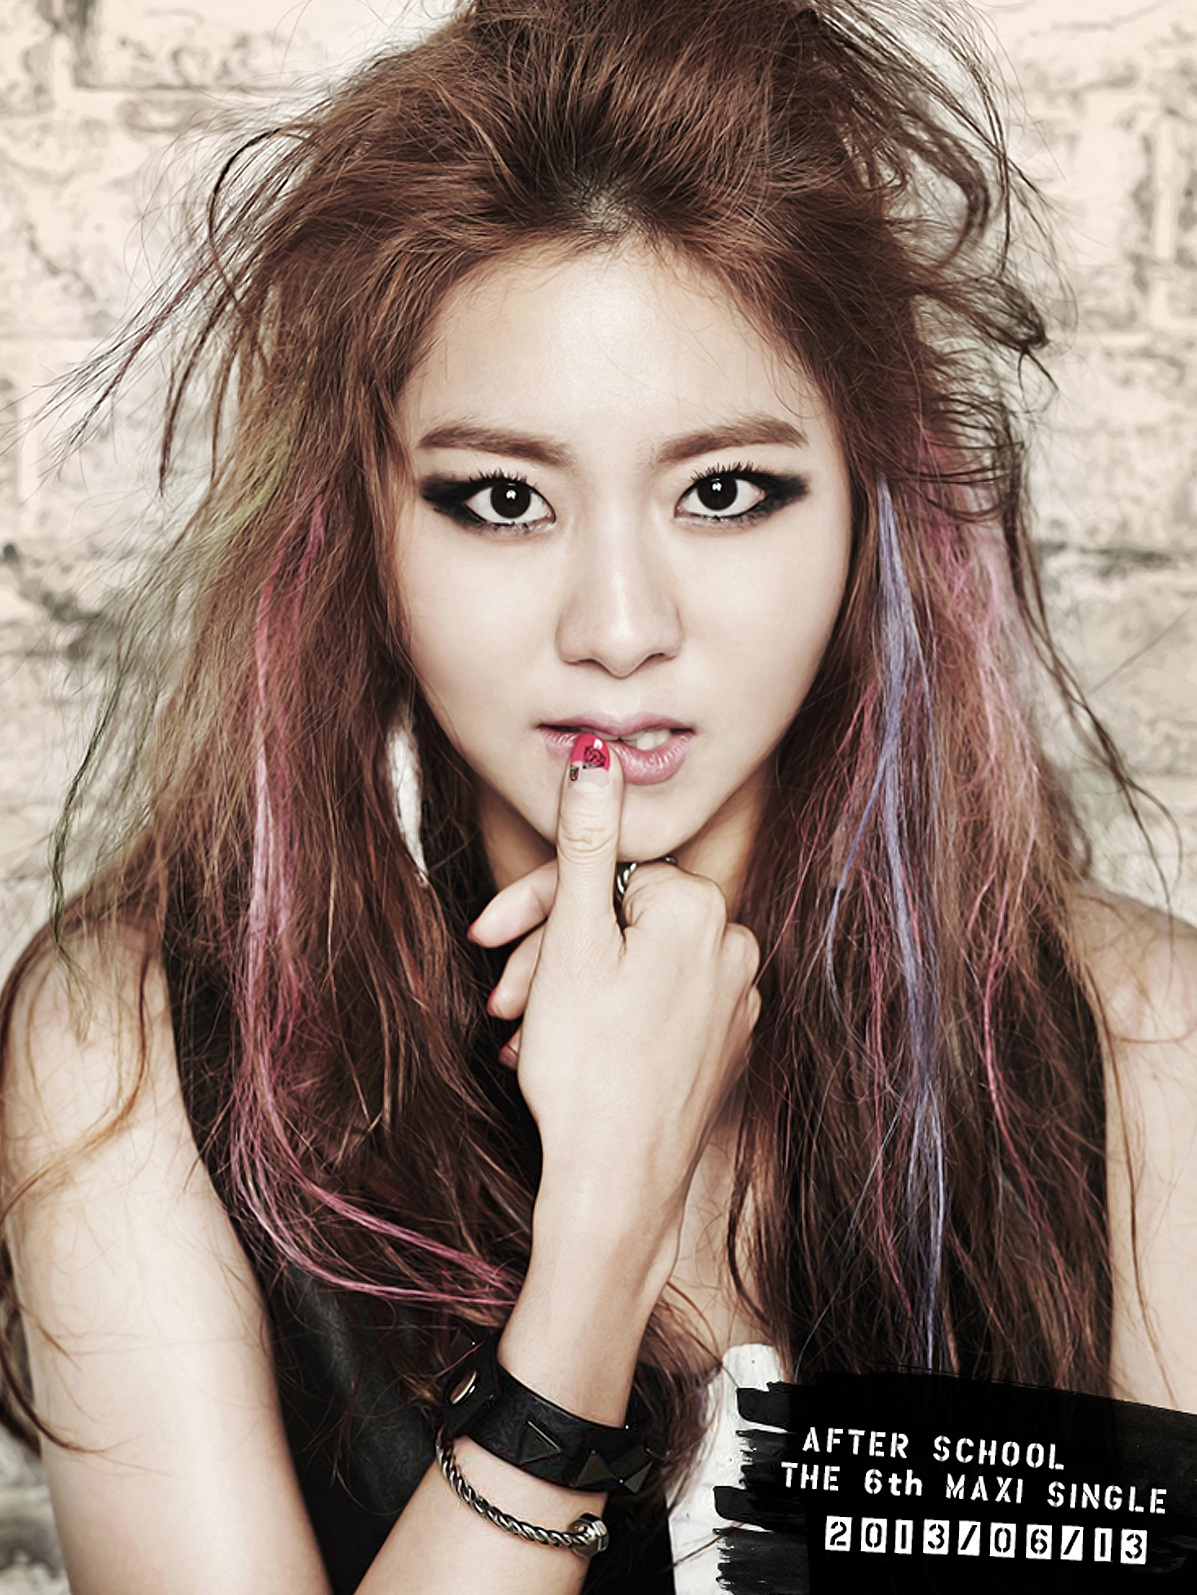 After school uee (유이) first love (첫사랑) wallpaper teaser